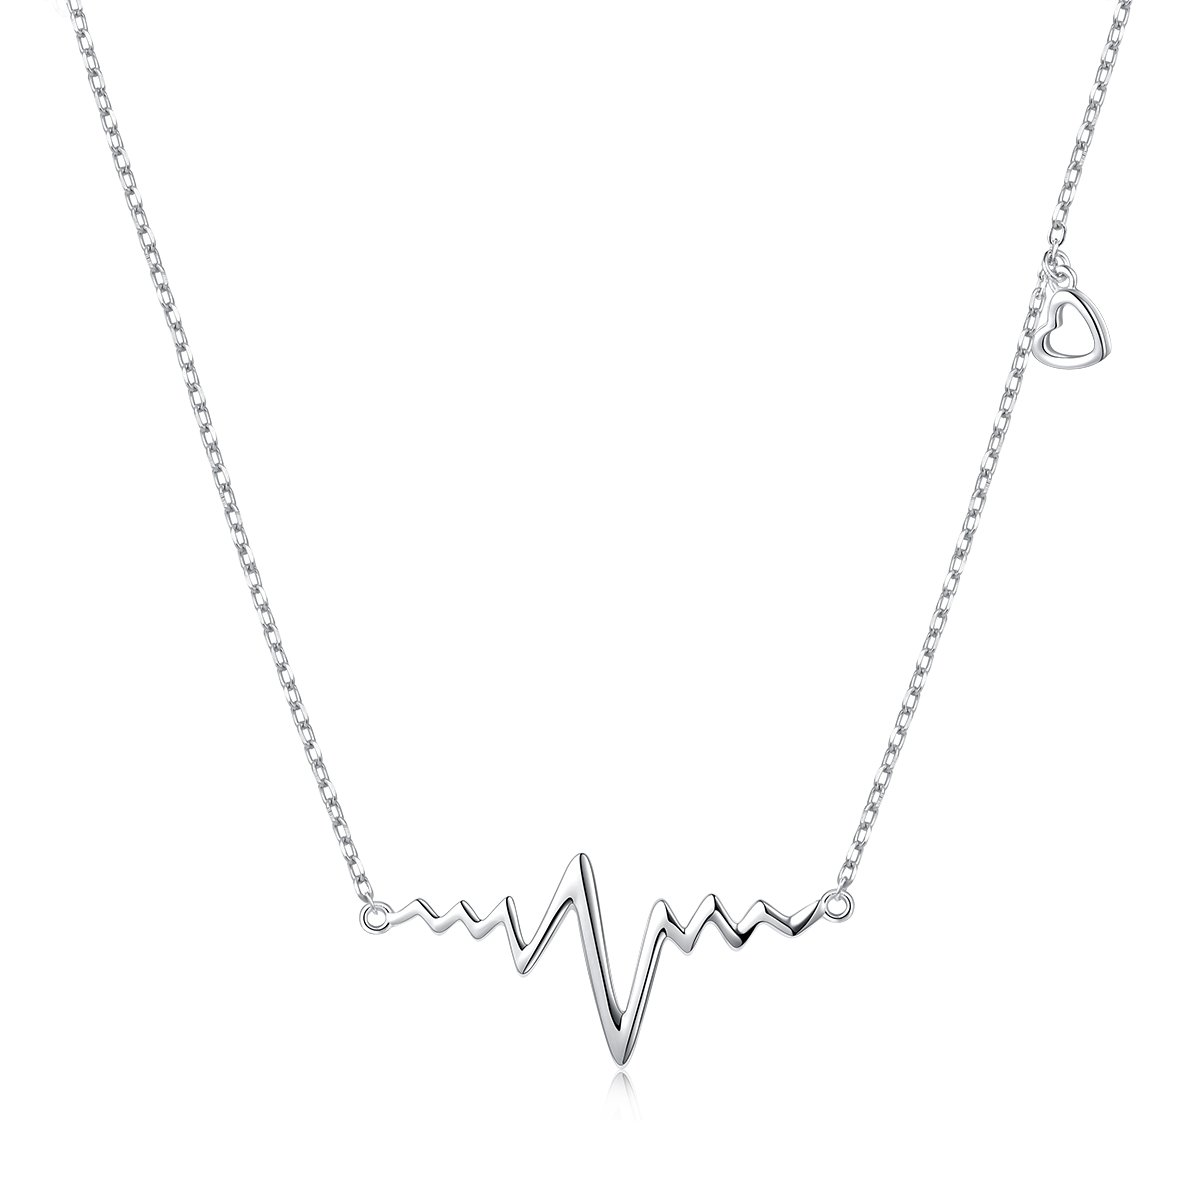 LINLIN FINE JEWELRY Heartbeat Necklace 925 Sterling Silver Infinity Love Cute Cardiogram Life Line Heart Charm EKG Heartbeat Necklace Gift for Women Girls,18'' (Sliver)